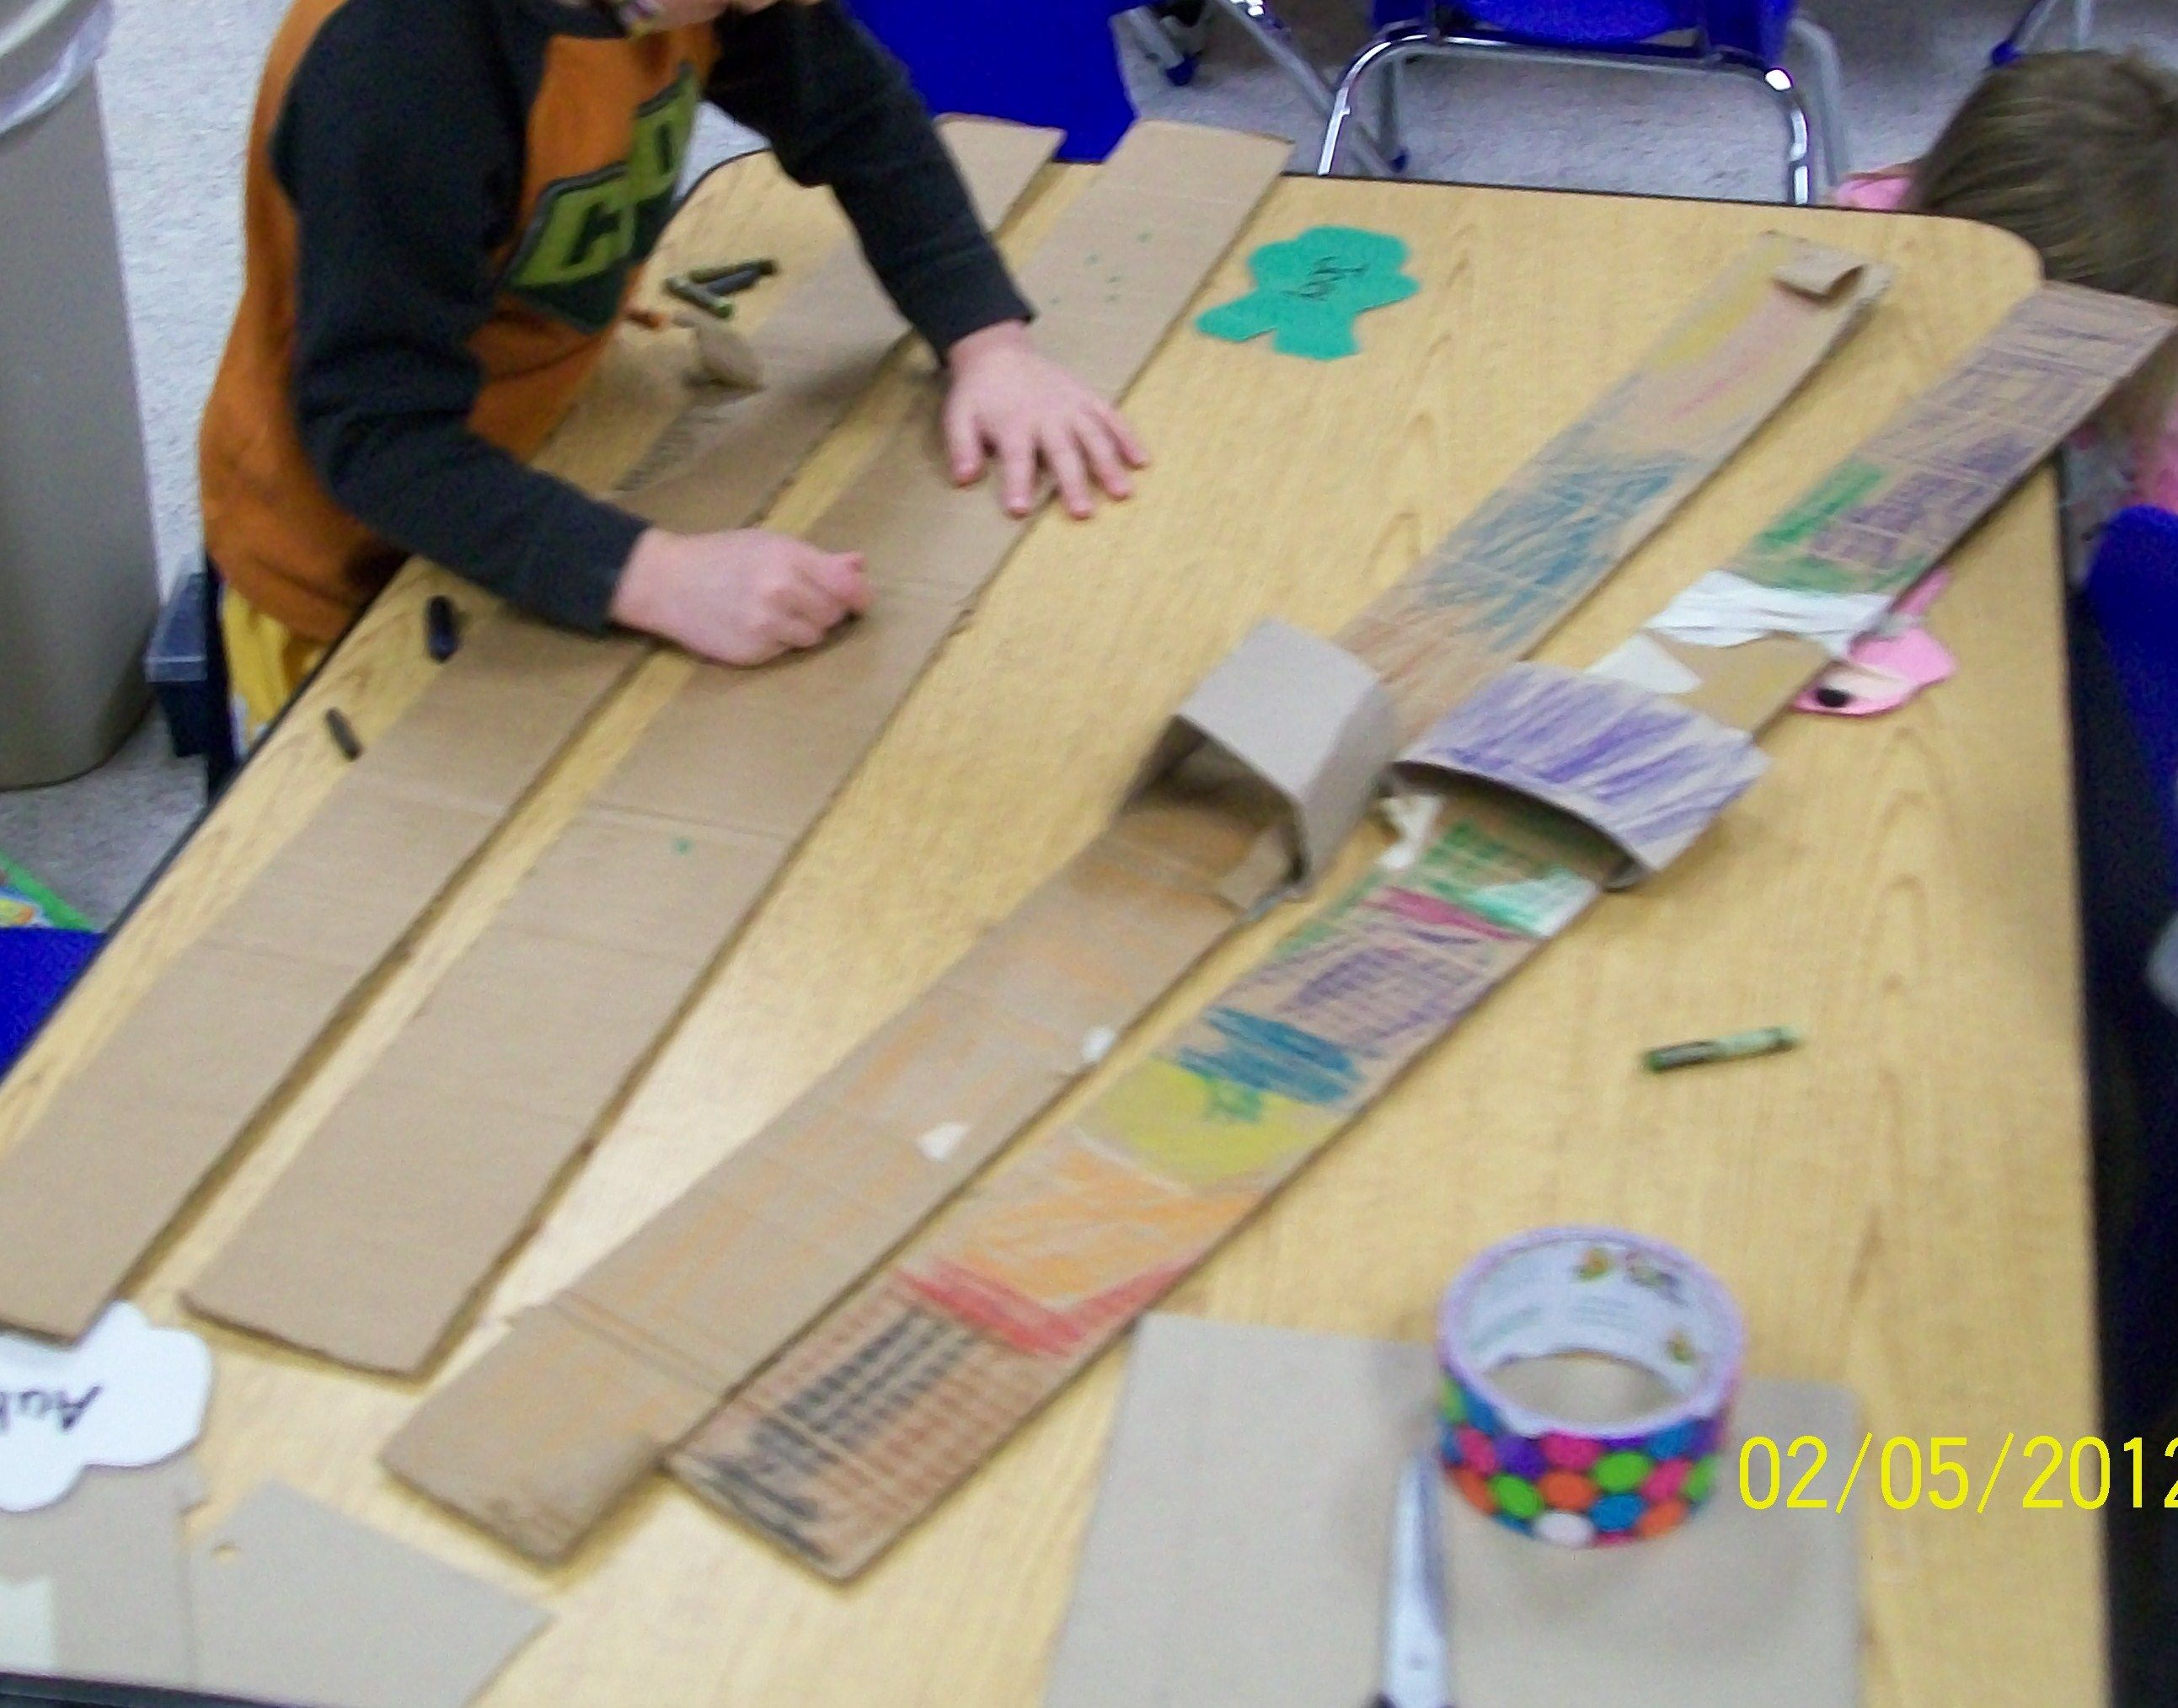 make your own skis and use them duct tape and cardboard dramatic play ideas pinterest. Black Bedroom Furniture Sets. Home Design Ideas